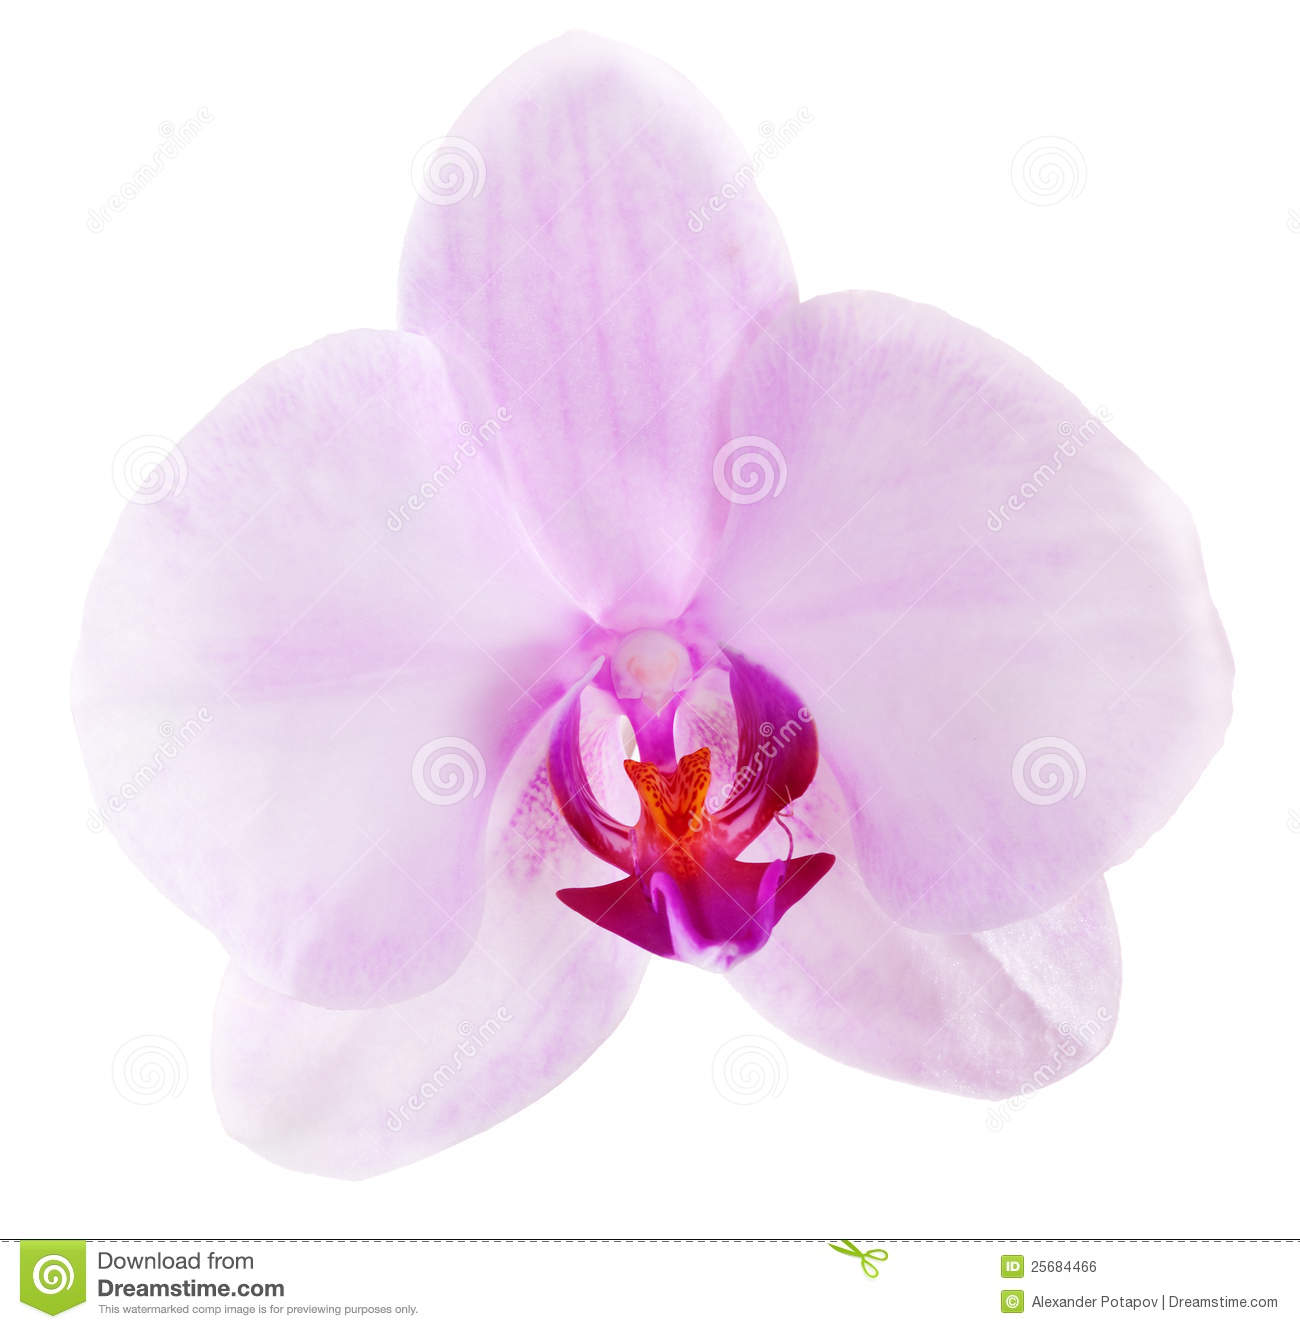 White Orchid Water Pink: Single Light Pink Isolated Orchid Flower Stock Photo